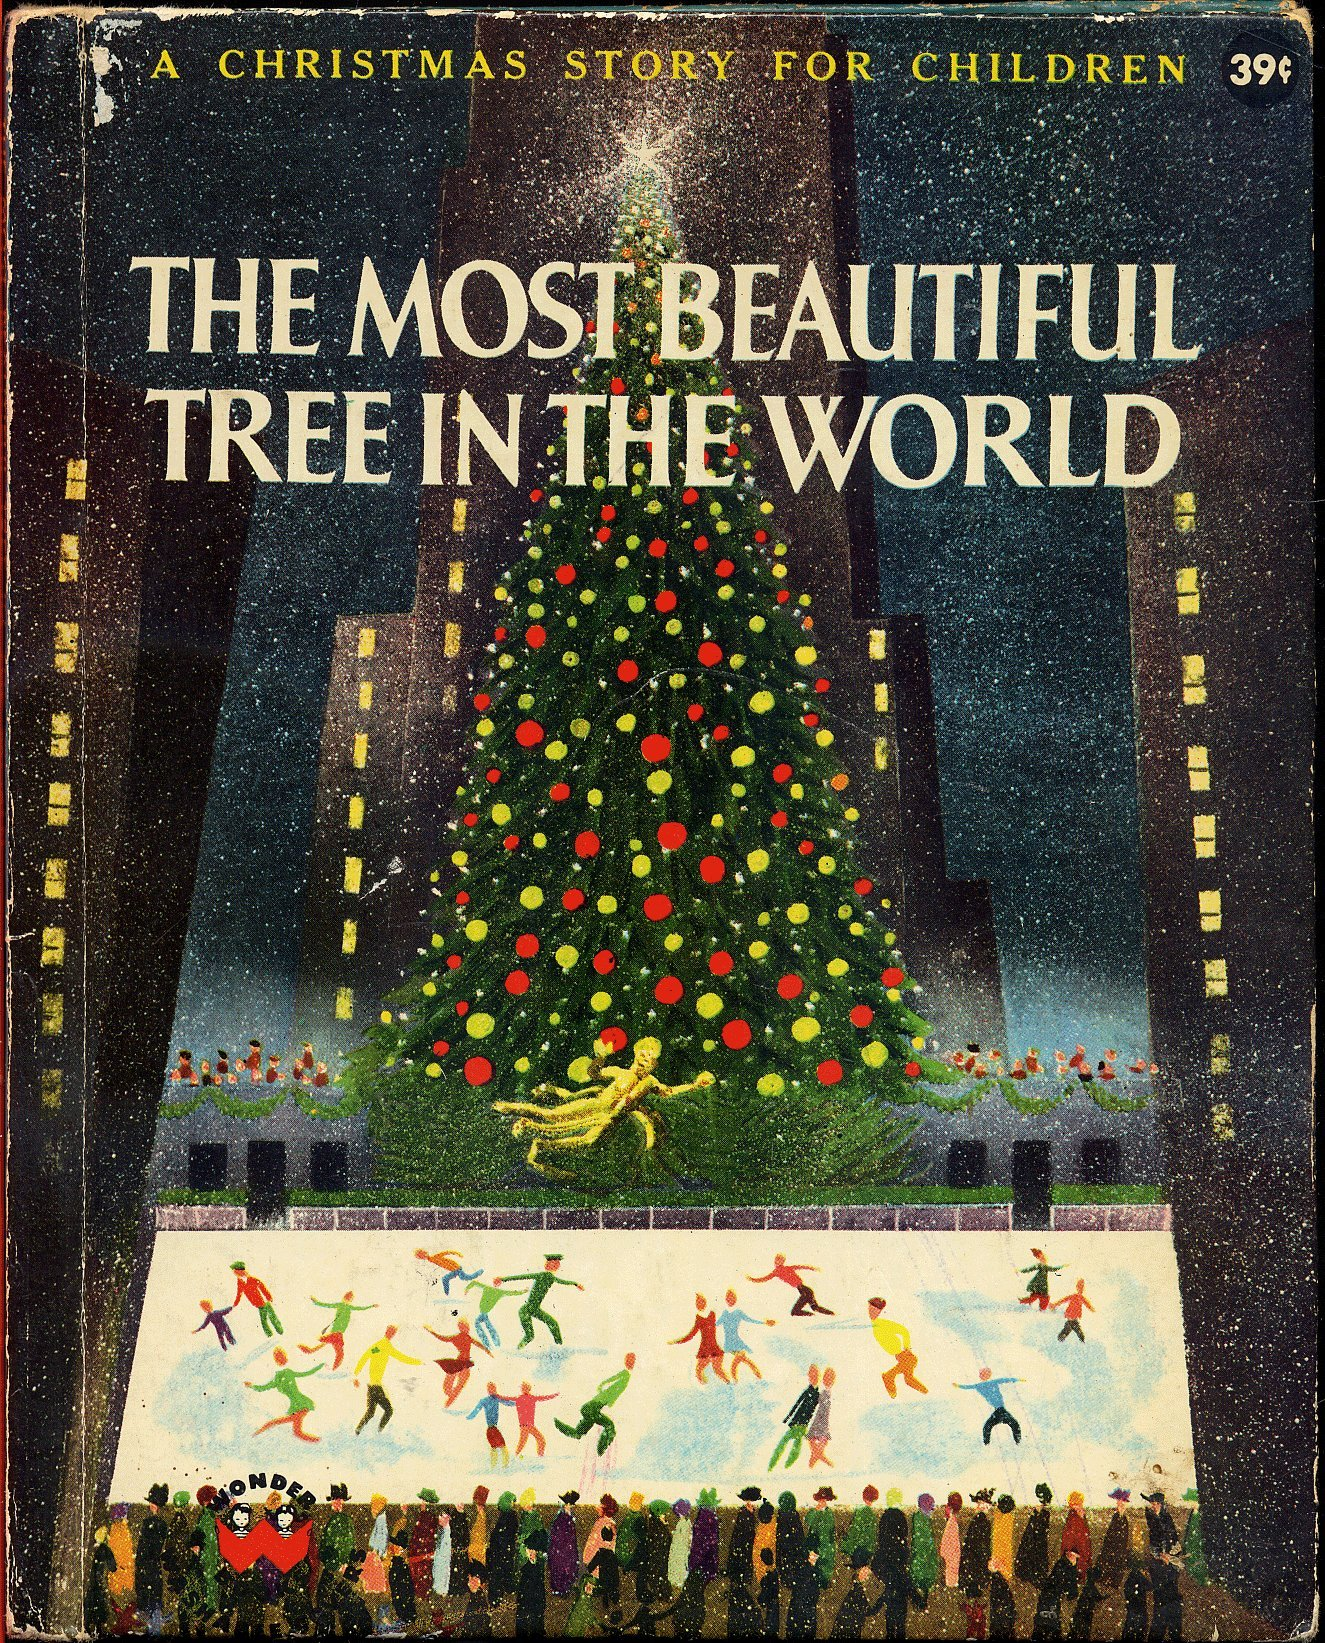 Uncategorized Christmas Stories Read Online the most beautiful tree in world a christmas story for children leonard weisgard amazon com books